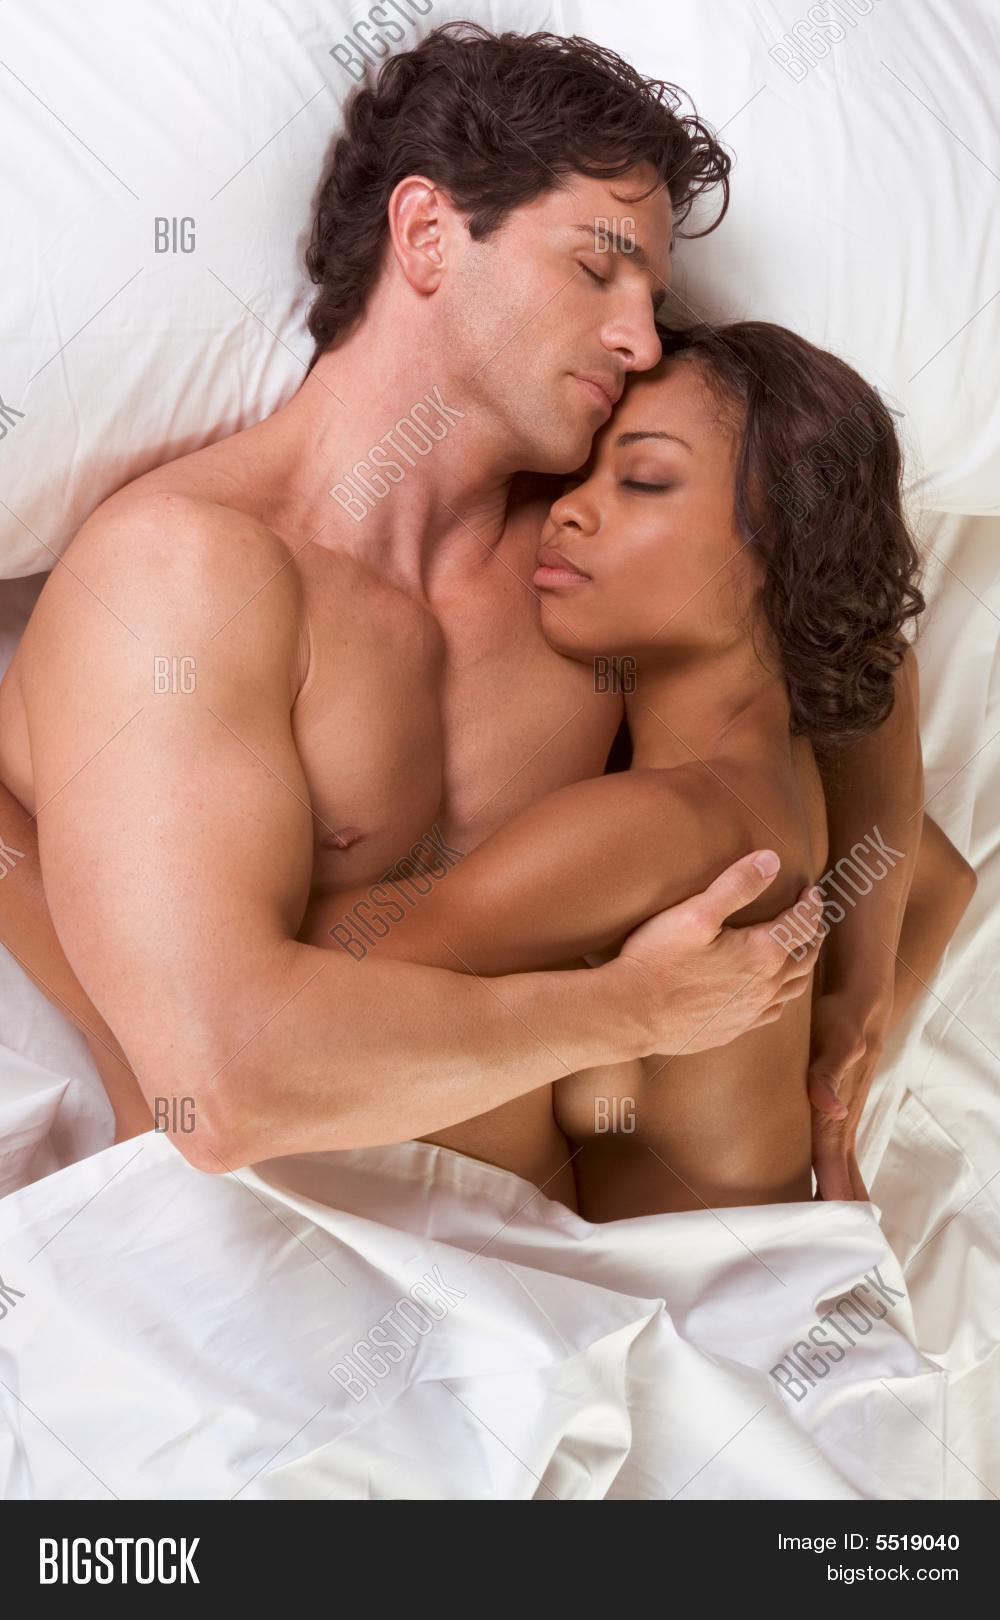 man-and-woman-sleeping-naked